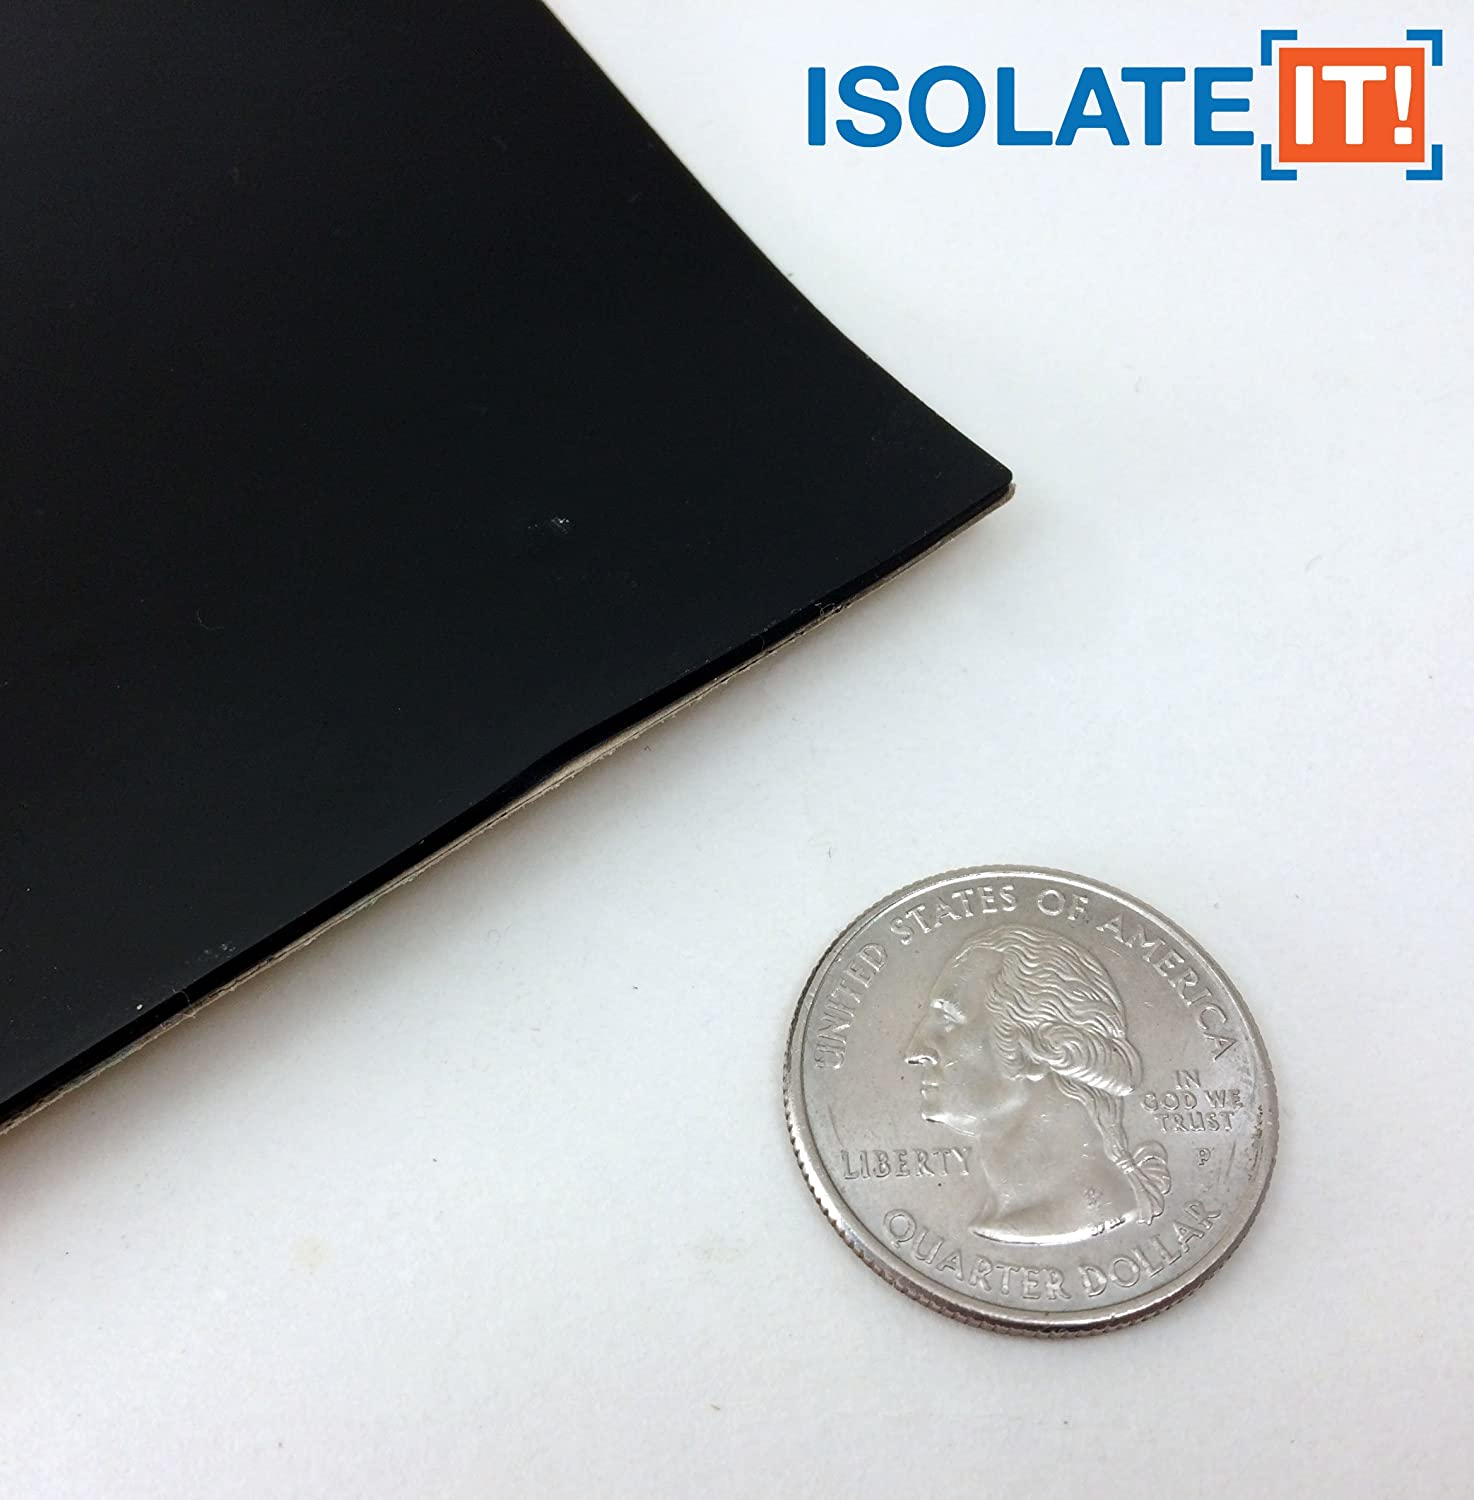 0.04 x 4 x 6in Sorbothane Acoustic /& Vibration Damping Film 40 Duro Isolate It!